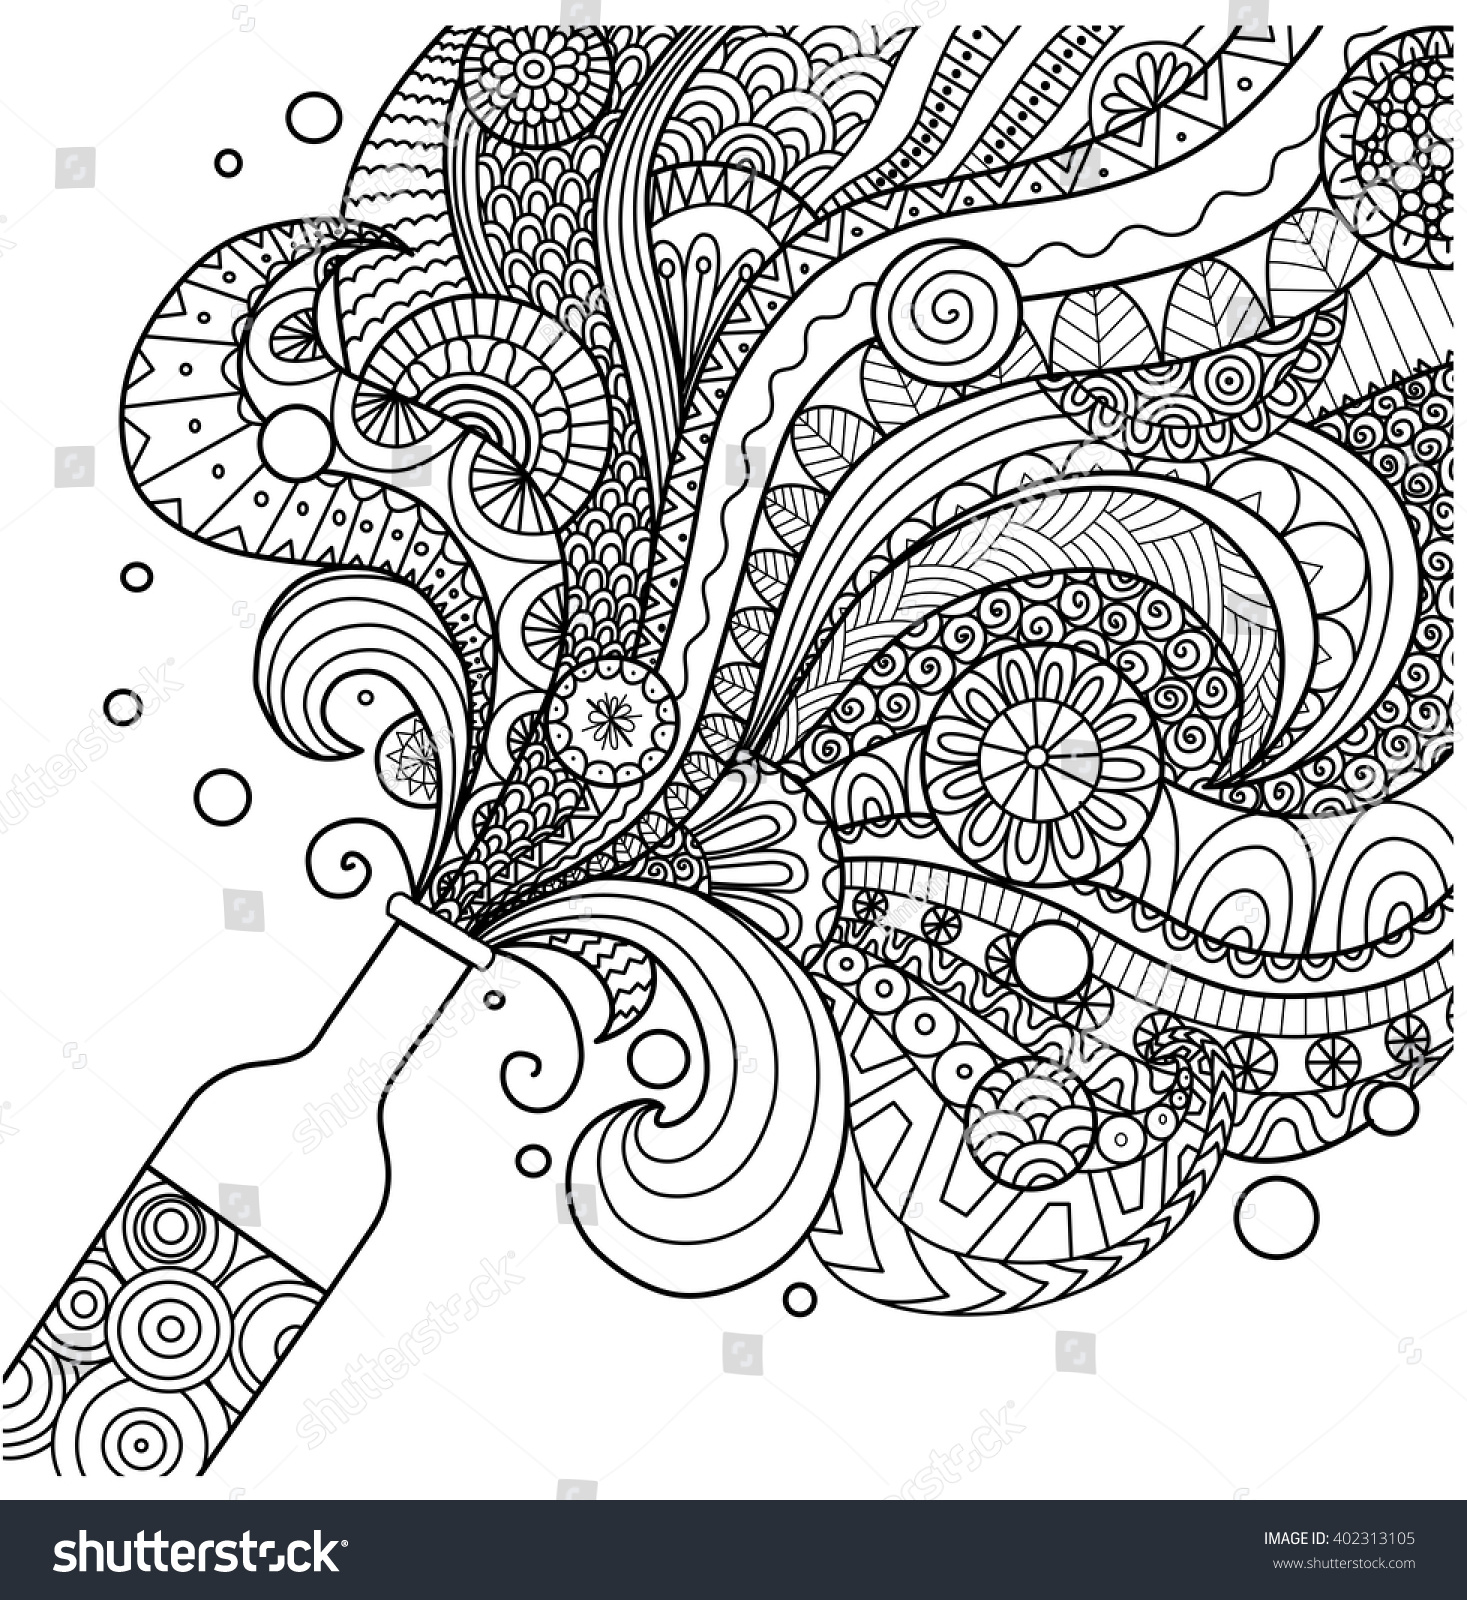 A Line Design : Champagne bottle line art design coloring stock vector